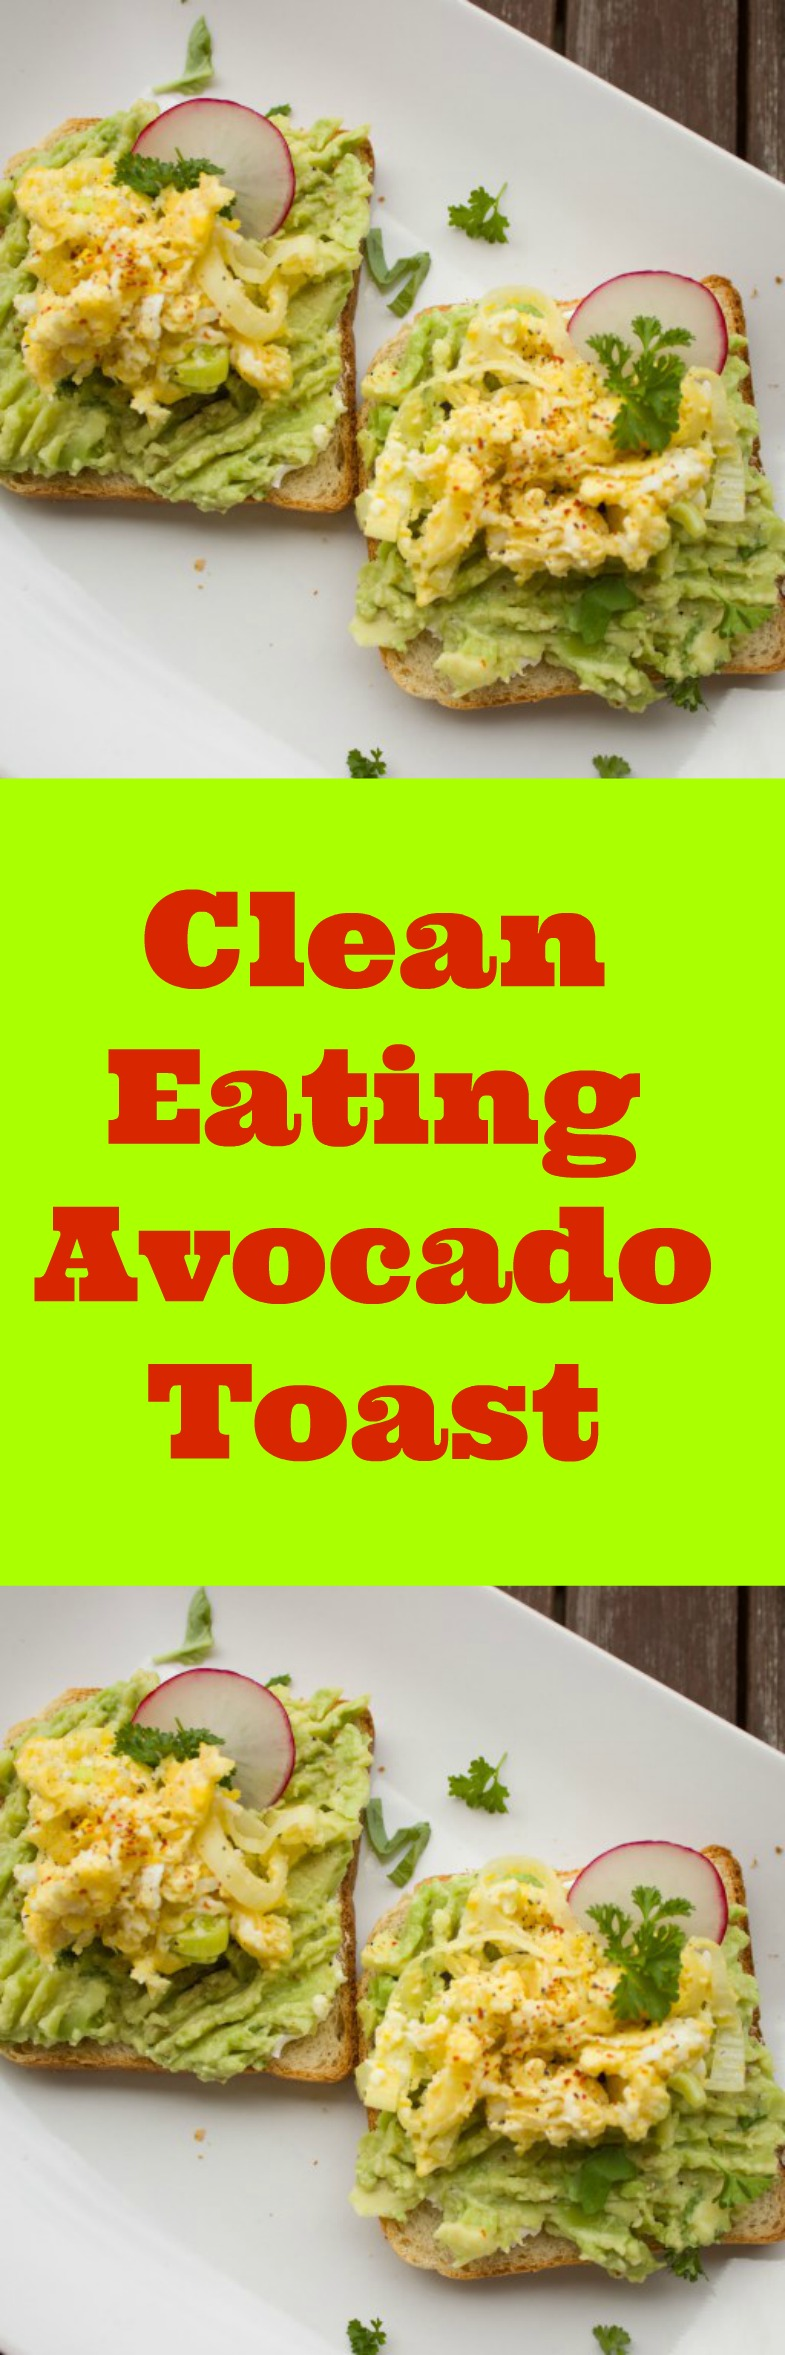 Detox your system with this approved clean eating avocado toast with egg and radish. Low carb meals for weight loss made easy. Choose the right Diet and exercise and you will achieve your goals.